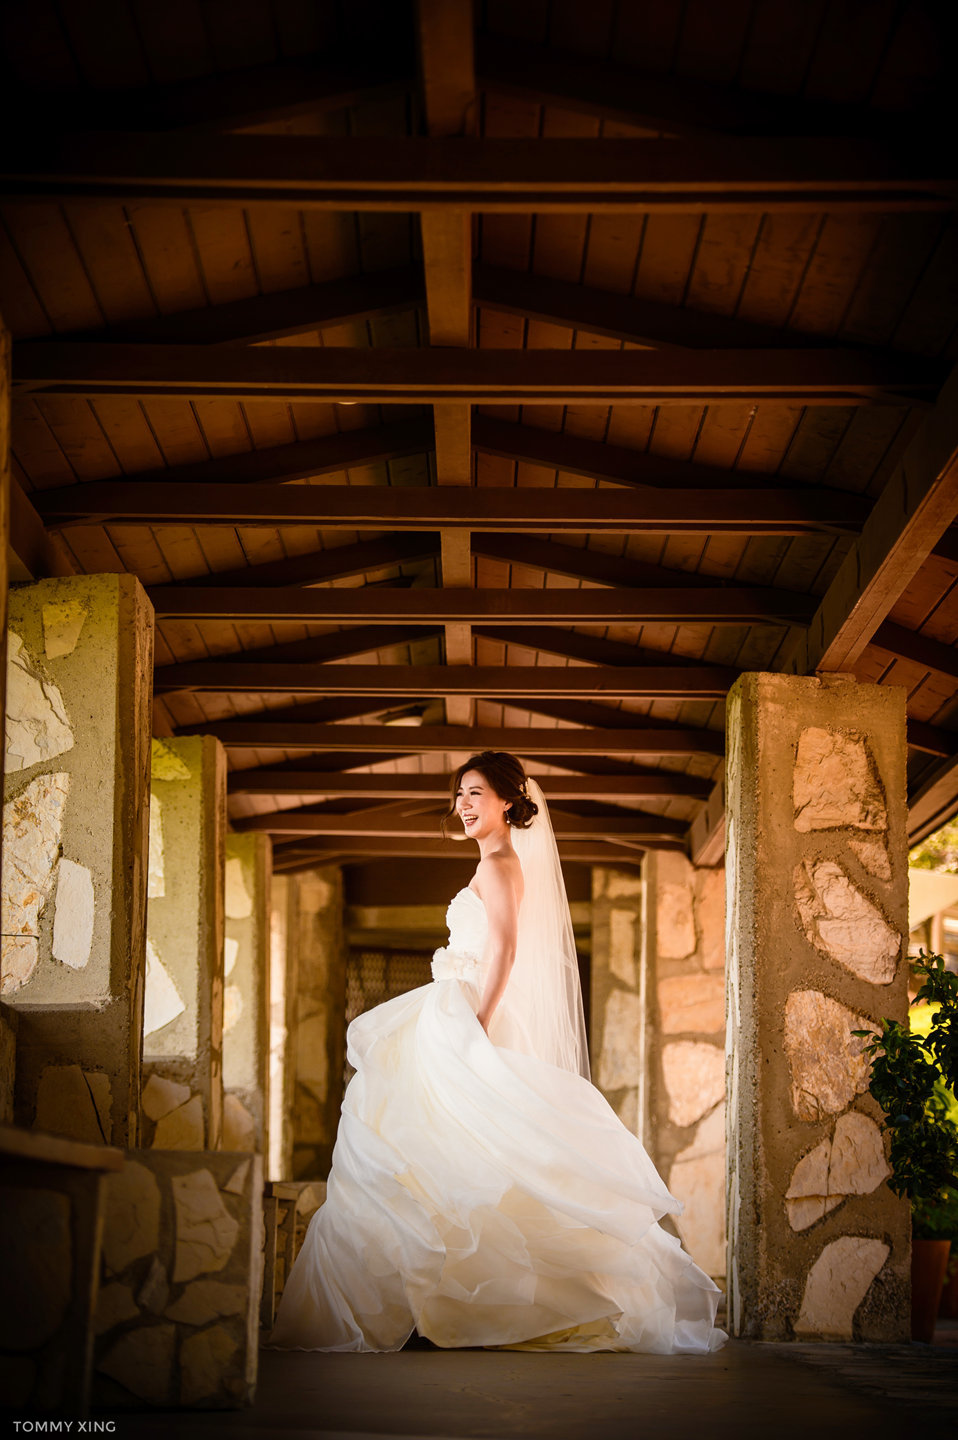 Wayfarers chapel Wedding Photography Ranho Palos Verdes Tommy Xing Photography 洛杉矶玻璃教堂婚礼婚纱照摄影师080.jpg